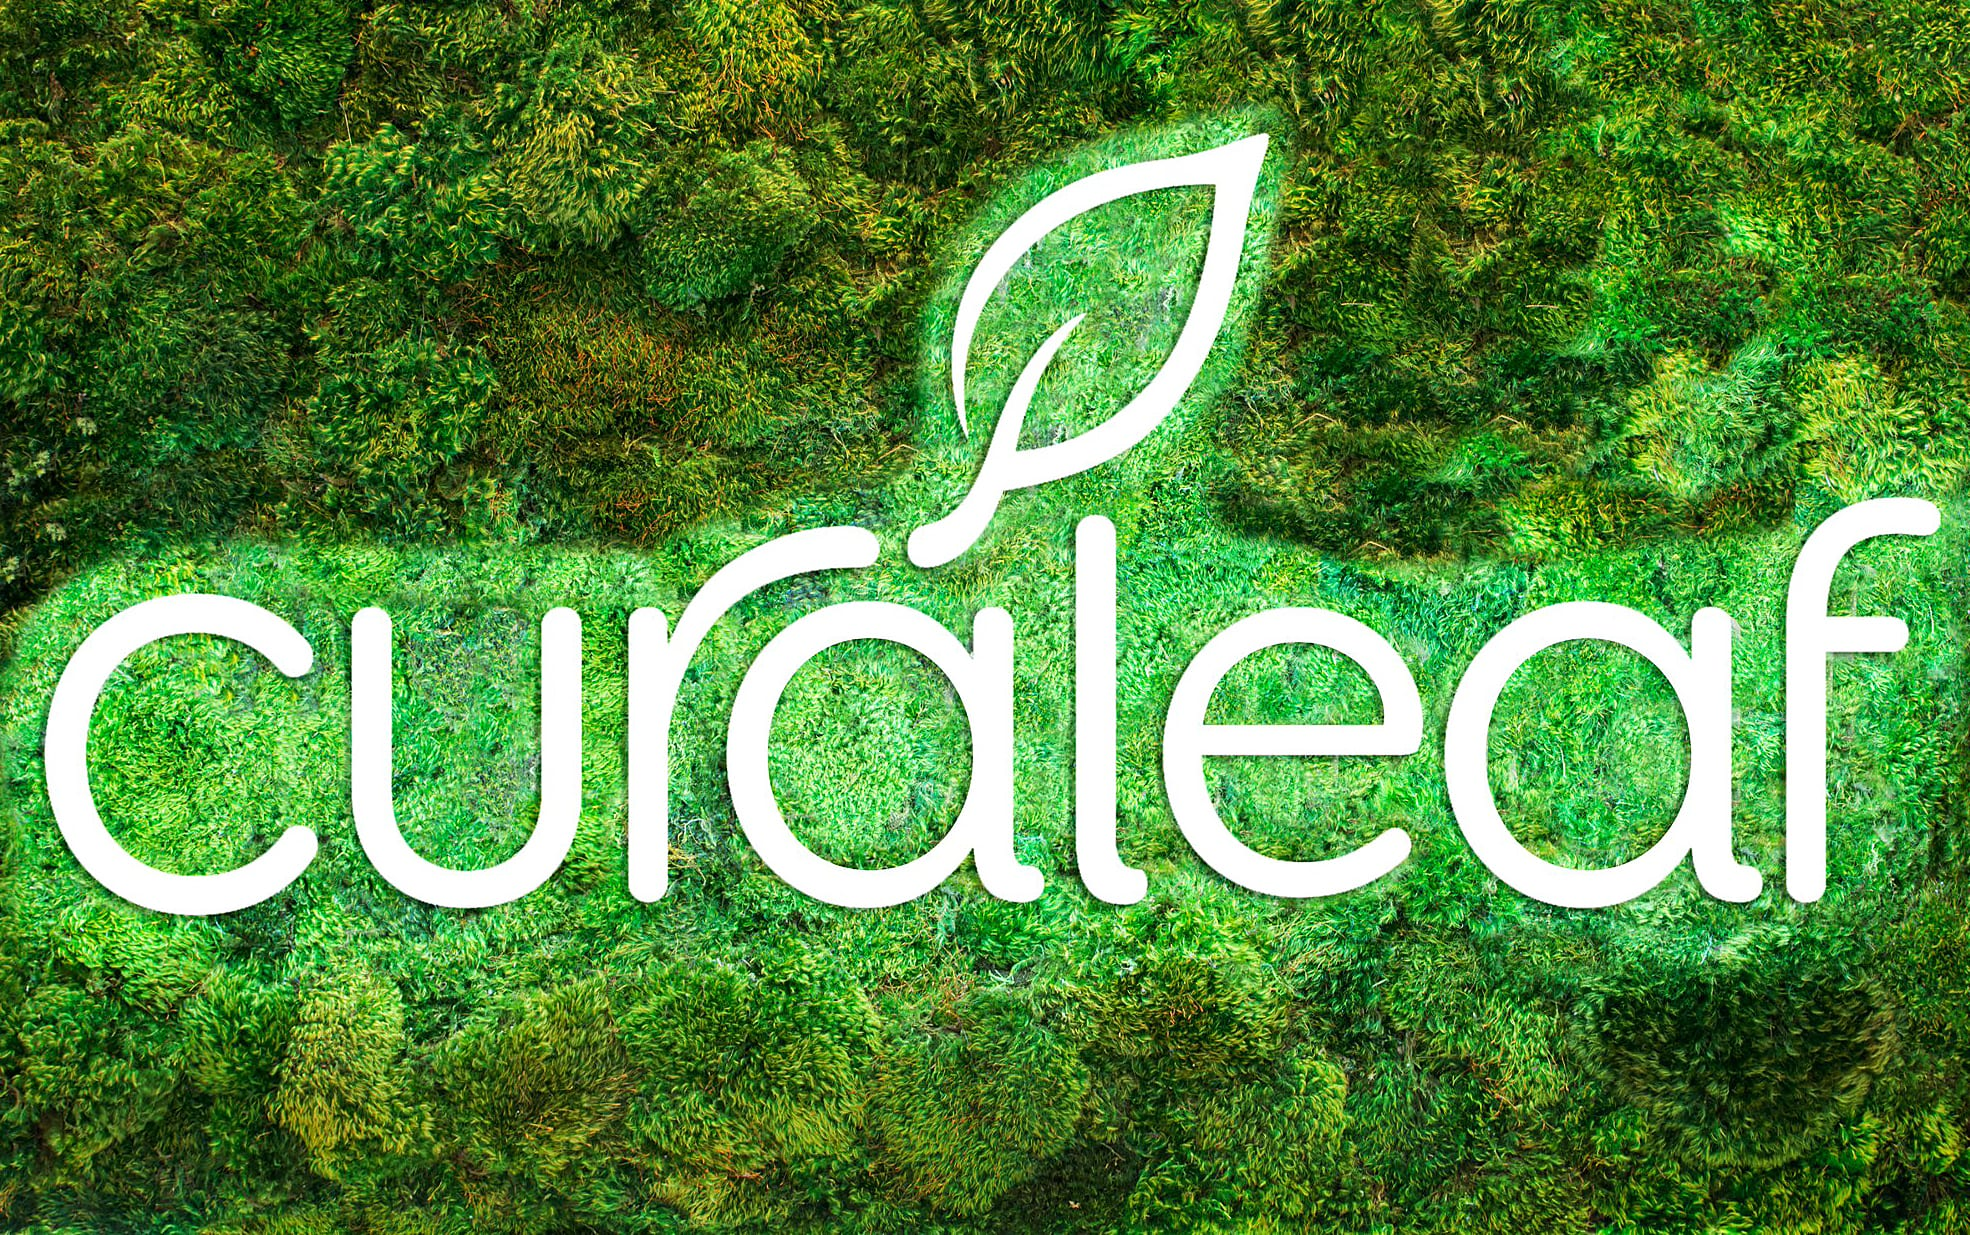 American cannabis leader Curaleaf Holdings received a warning letter from the FDA for allegedly illegally selling and marketing its CBD products.